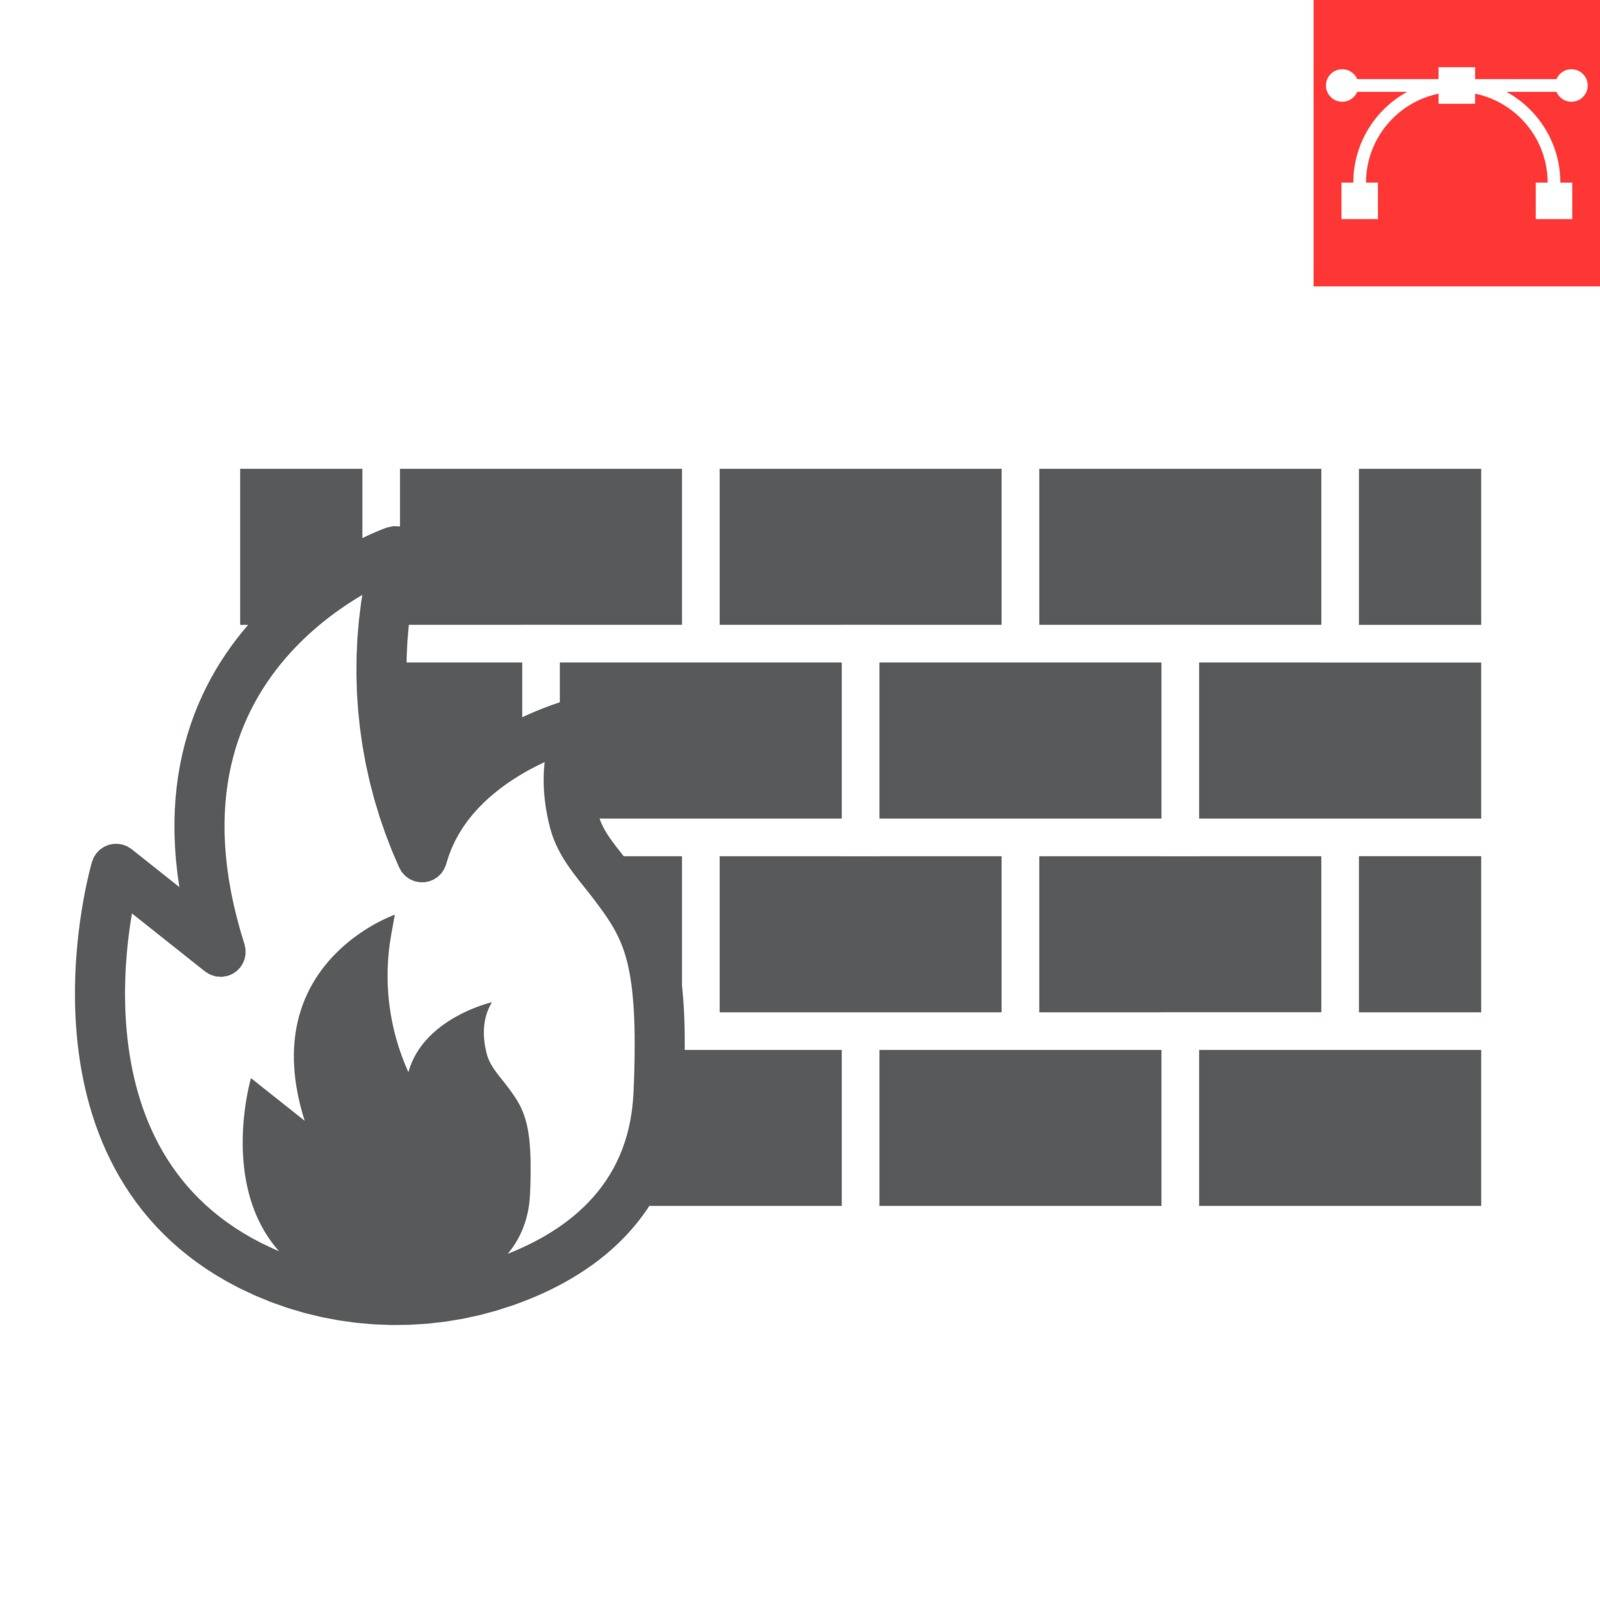 Firewall glyph icon, security and protection, flame sign vector graphics, editable stroke solid icon, eps 10